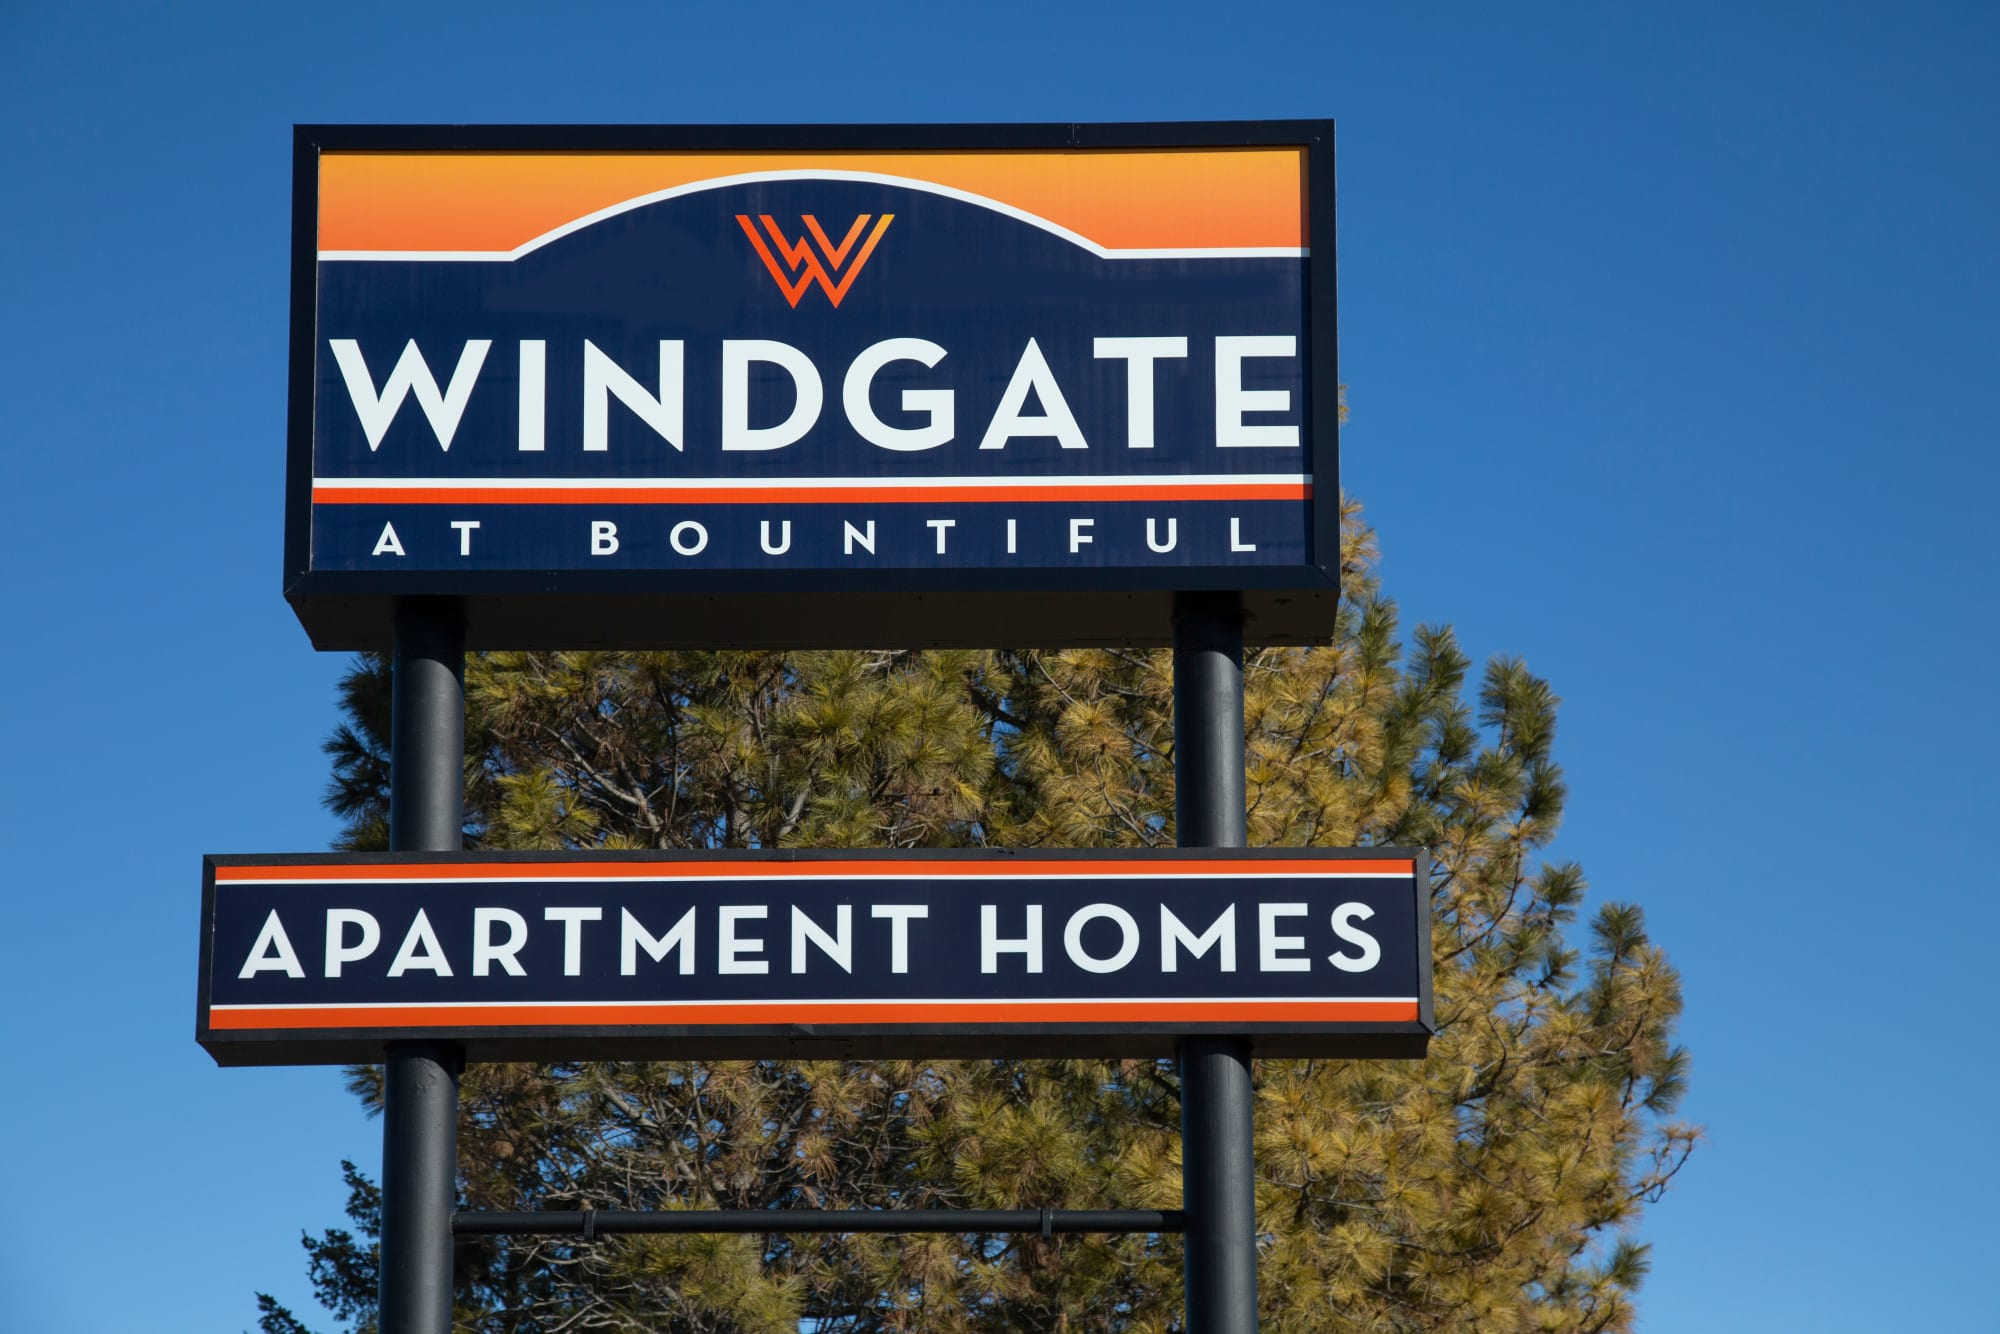 Monument sign at Windgate Apartments in Bountiful, Utah